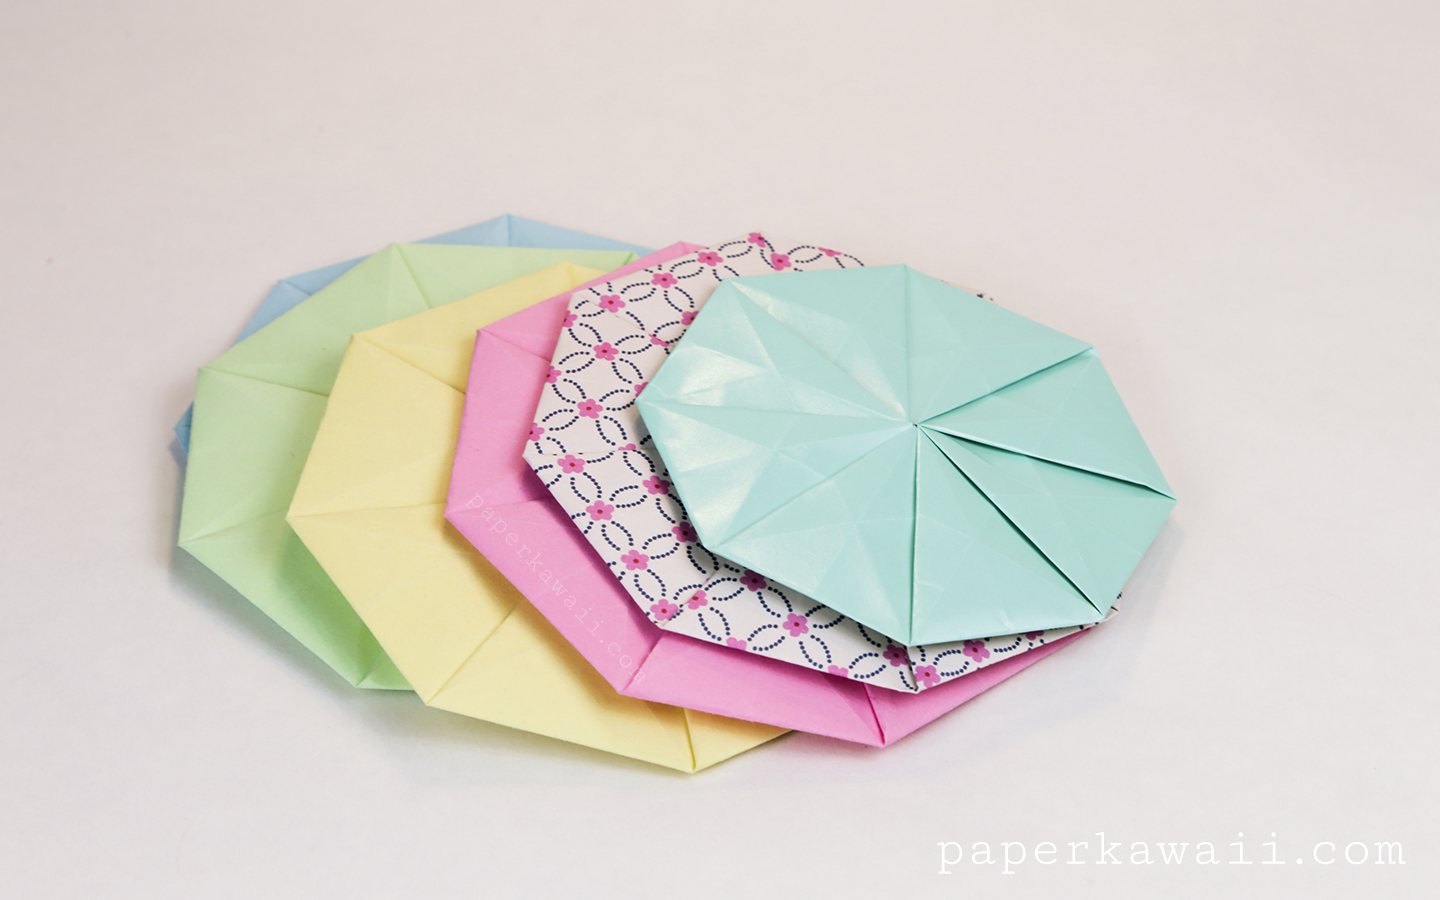 Origami Octagonal Tato Coaster - Video & Diagram via @paper_kawaii